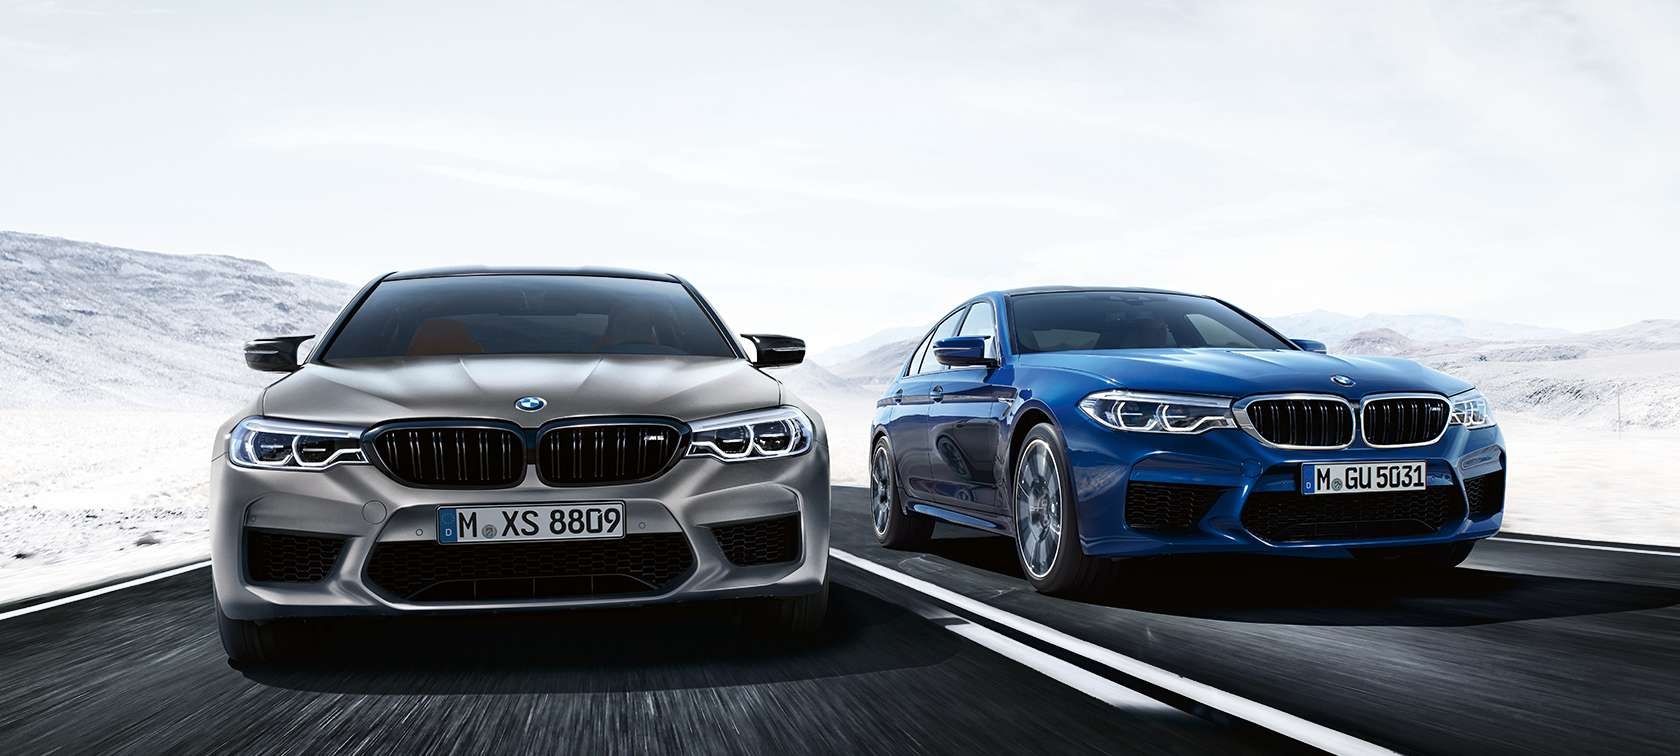 The all new bmw m5 with m xdrive